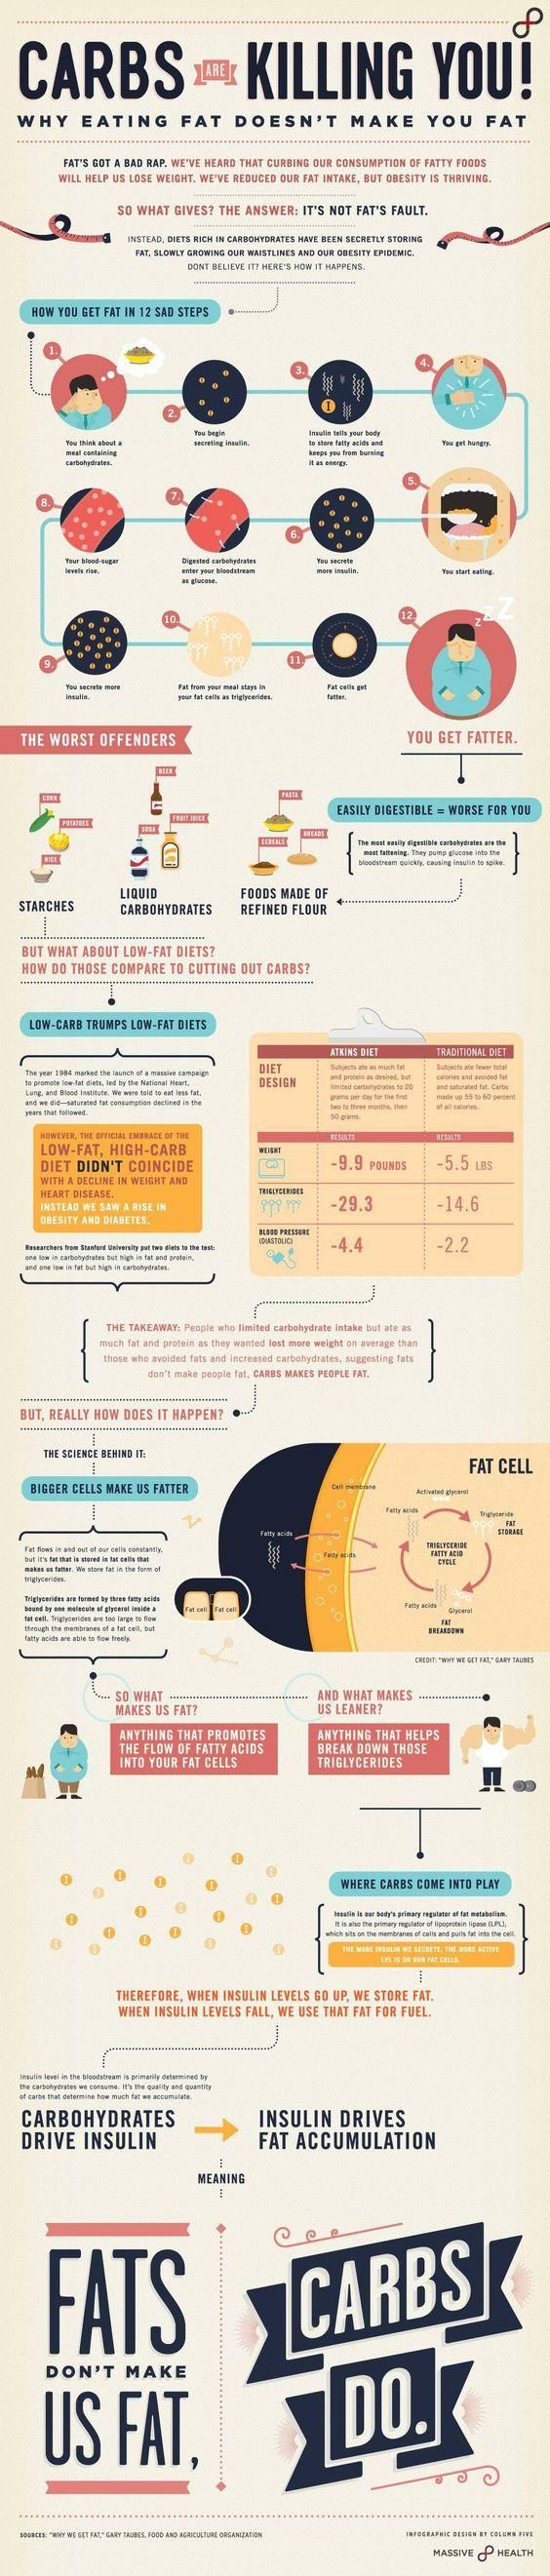 Ultimate fat loss nj cost per pound - Focus On Fat Loss And Muscle Gain Healthy Thinking Healthy Moving Pinterest Muscles Exercises And Lean Legs